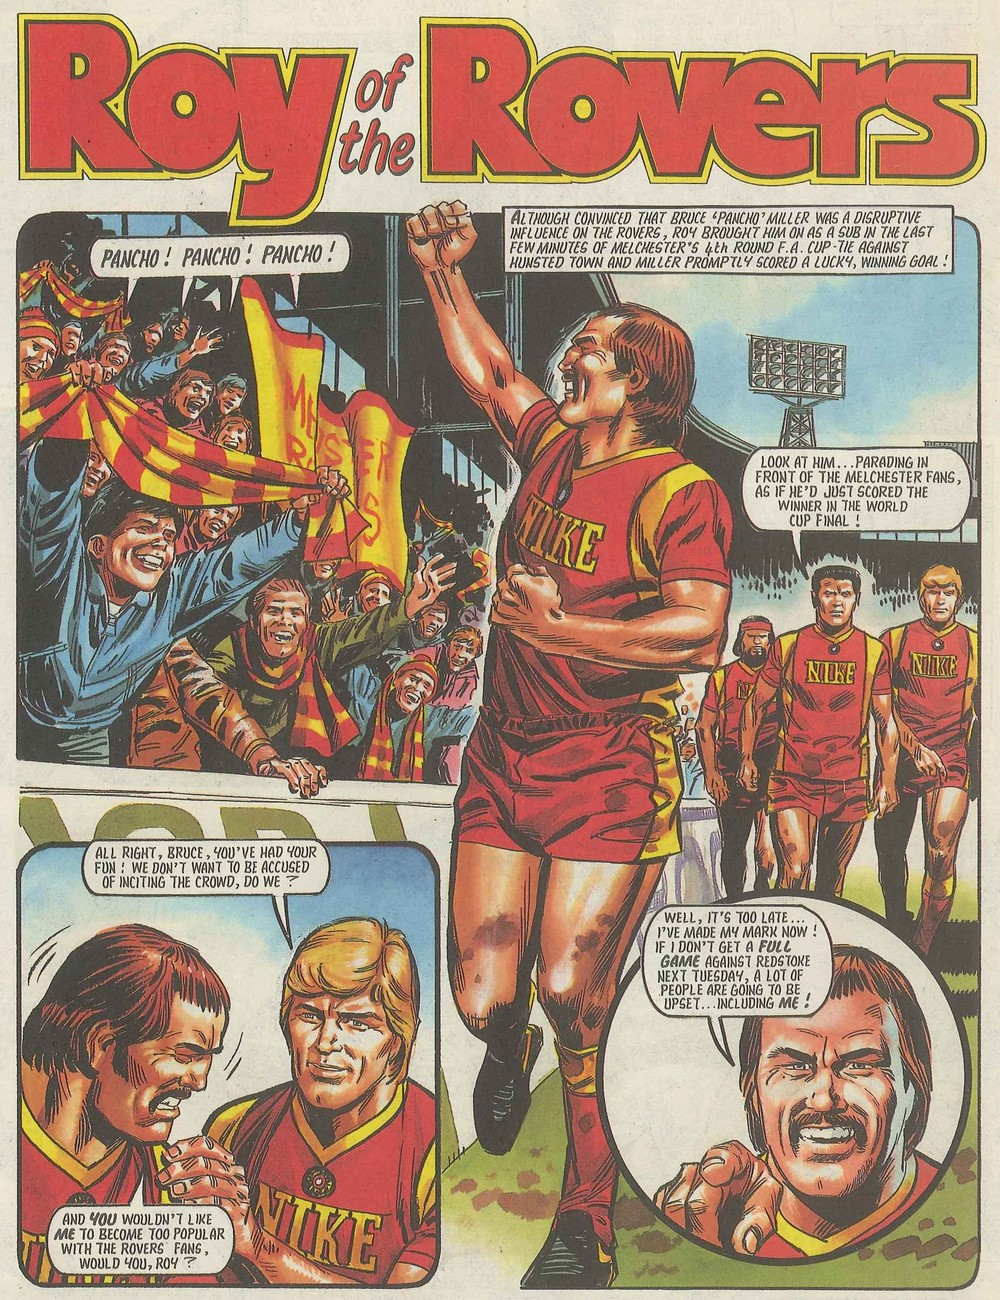 Roy of the Rovers: Tom Tully (writer), Mike White (artist)